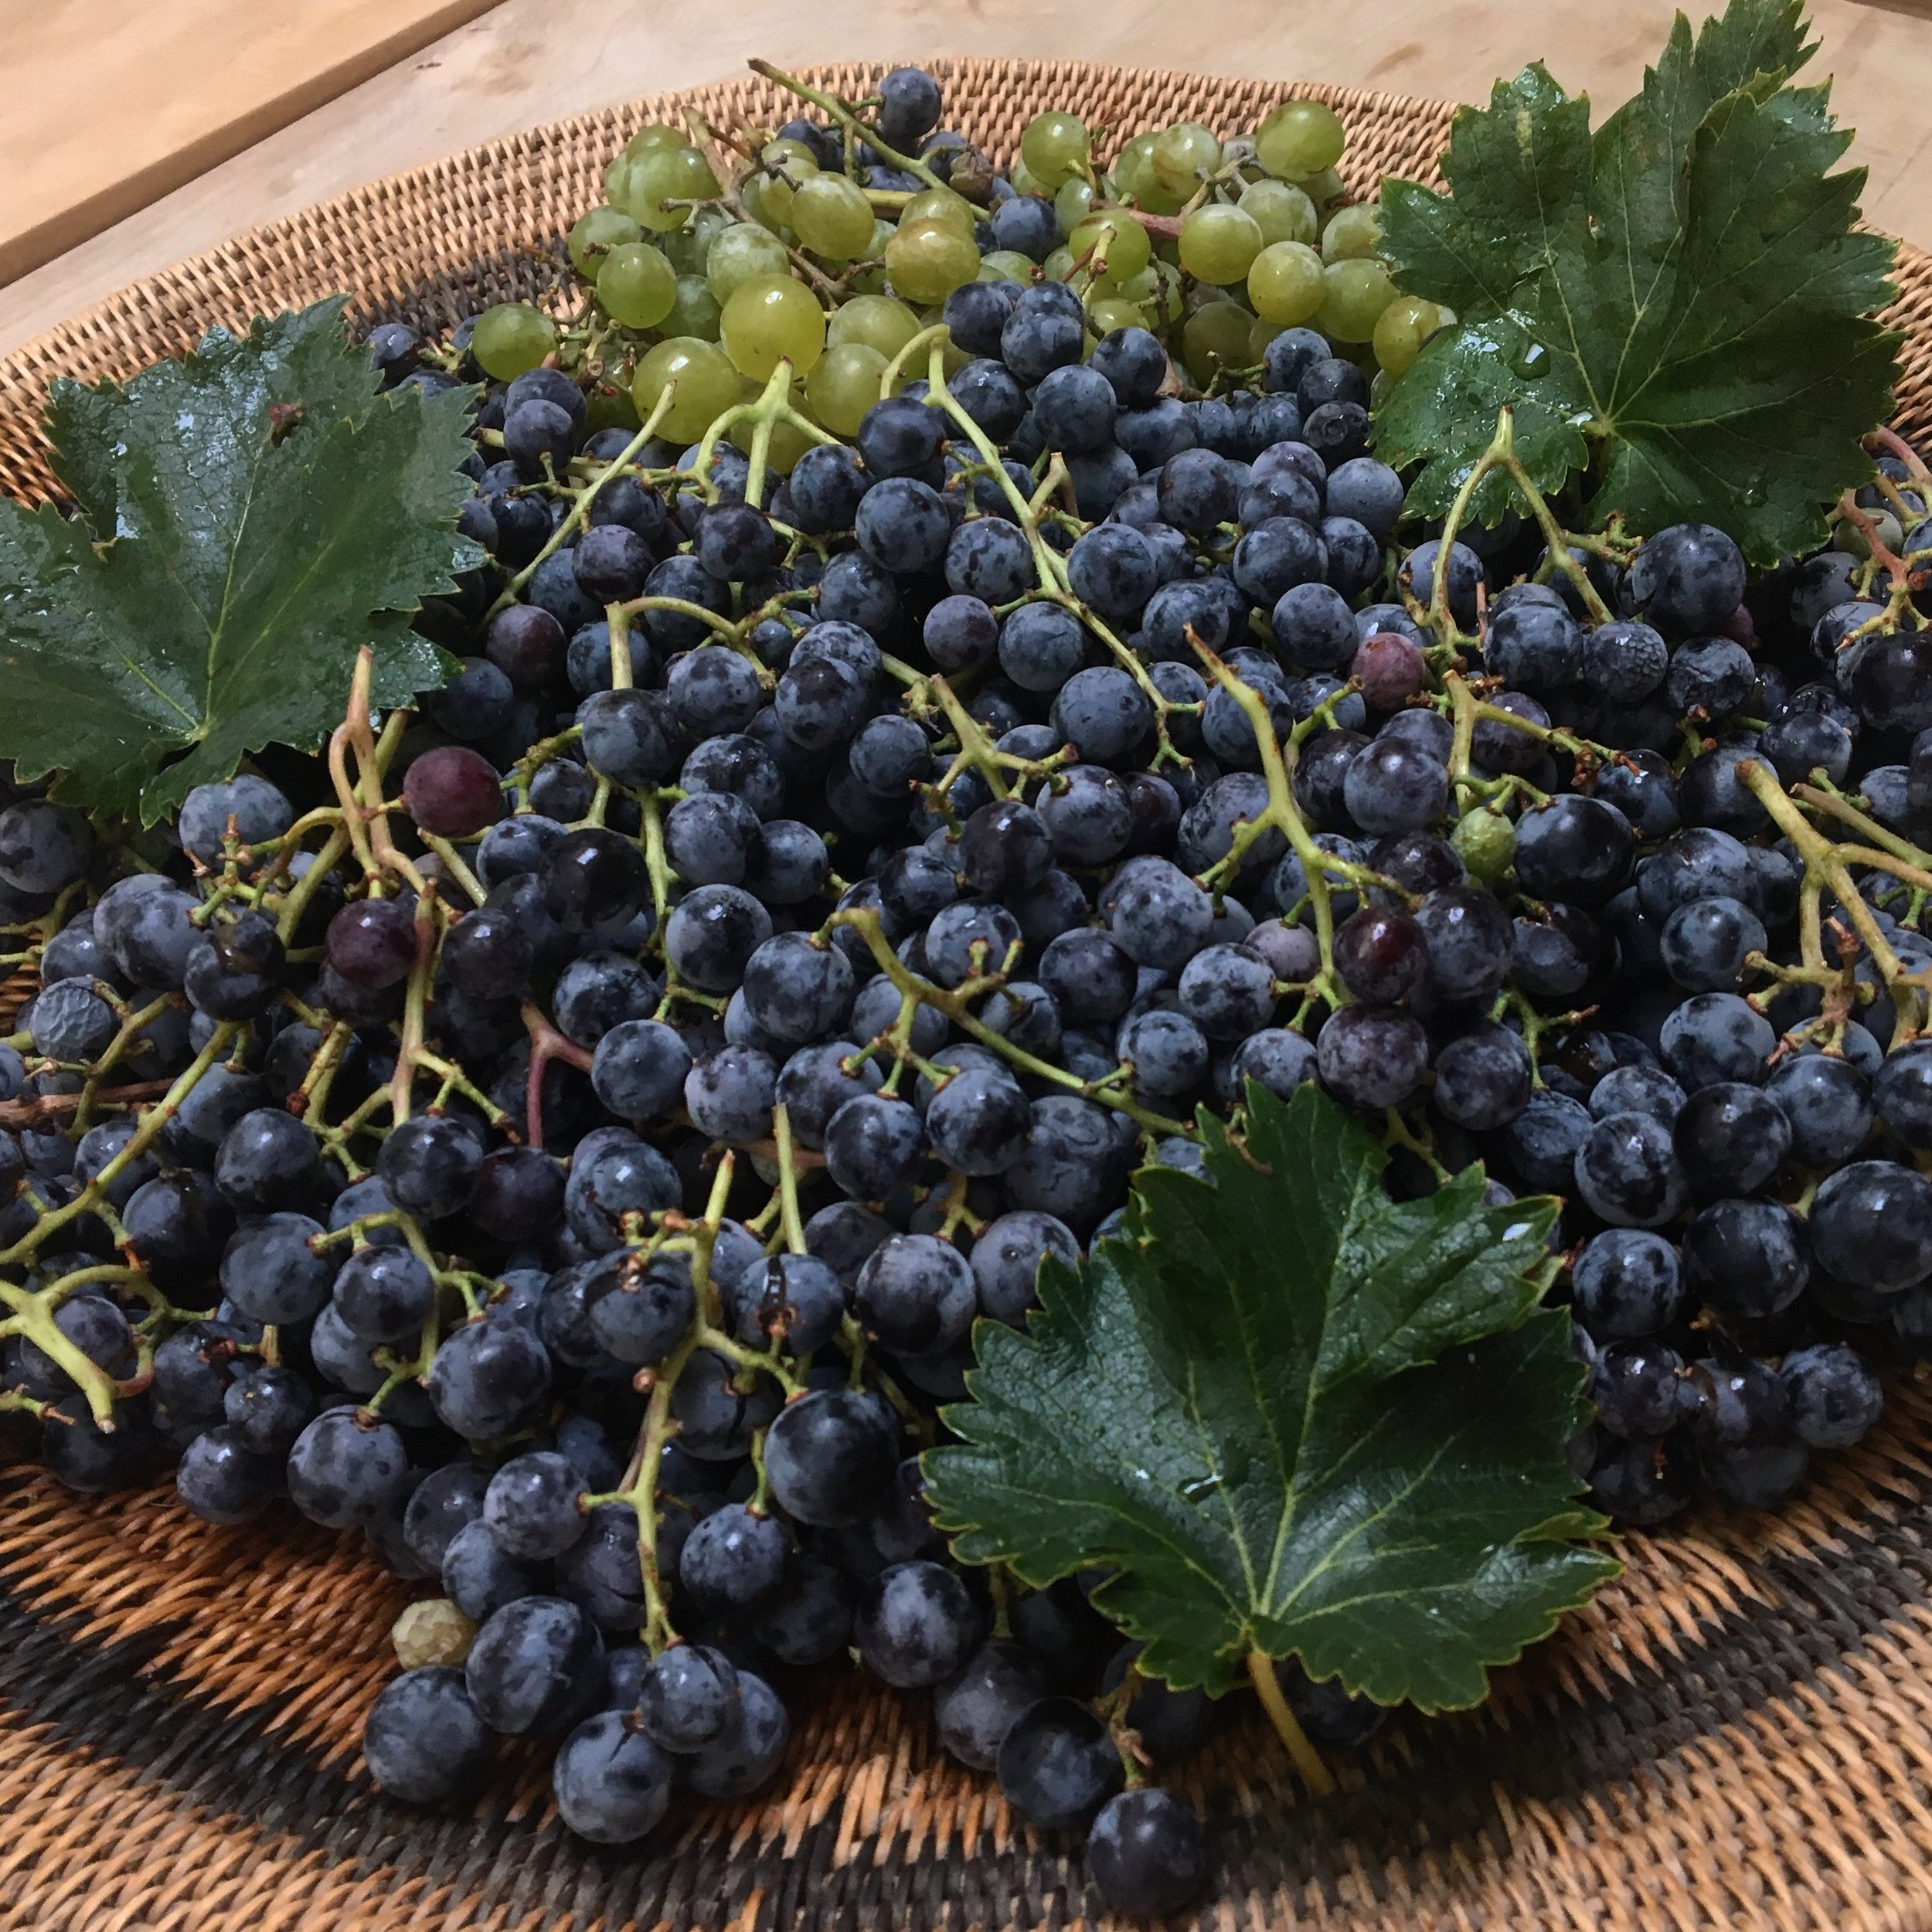 Freshly picked concord grapes